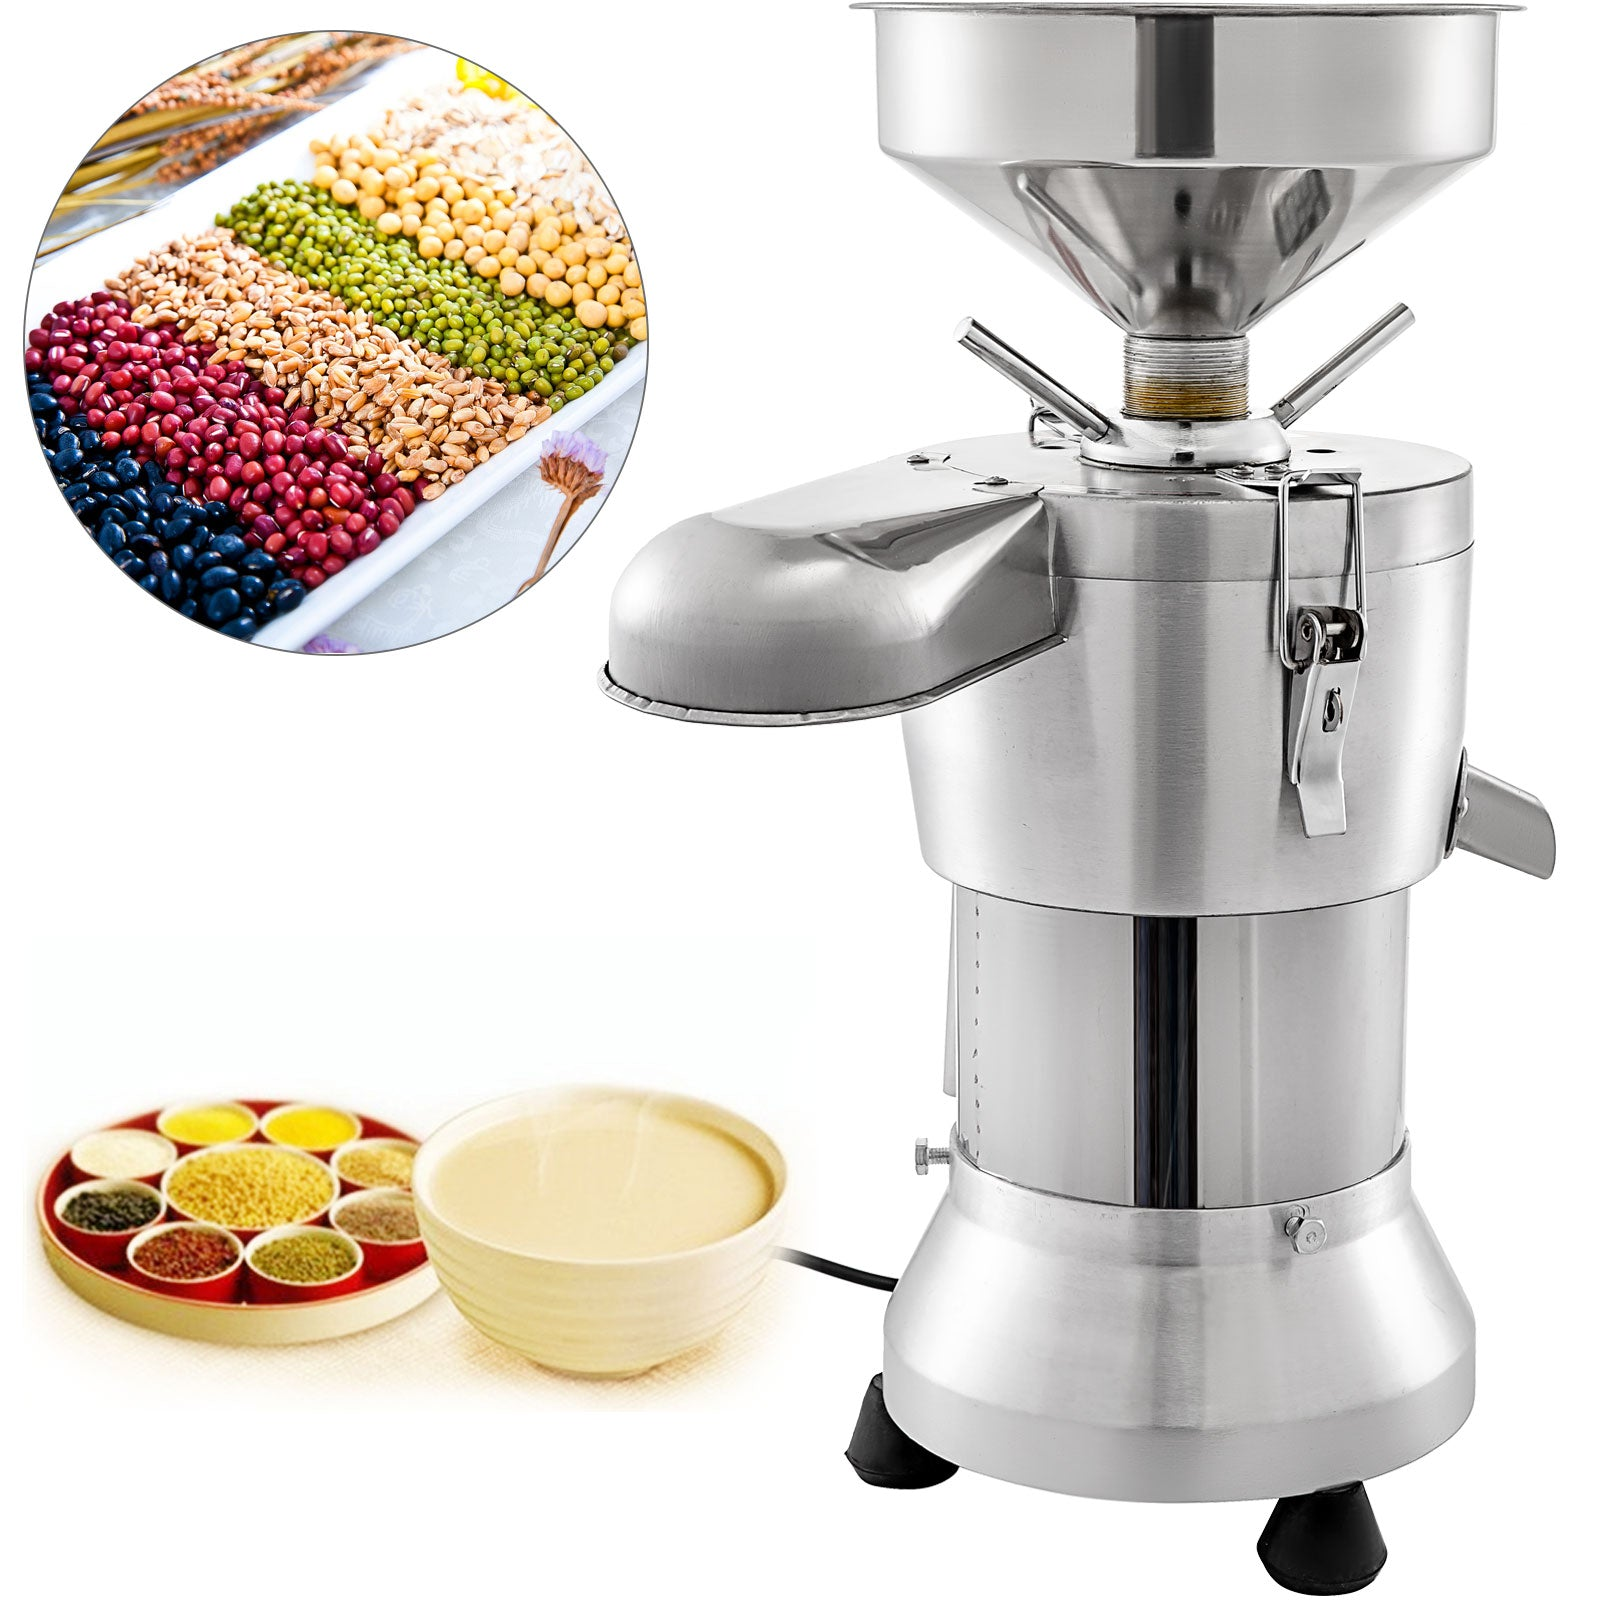 Soybean Grinding Machine Soymilk Machine Soy Bean Pulping Milk Machine 1100w